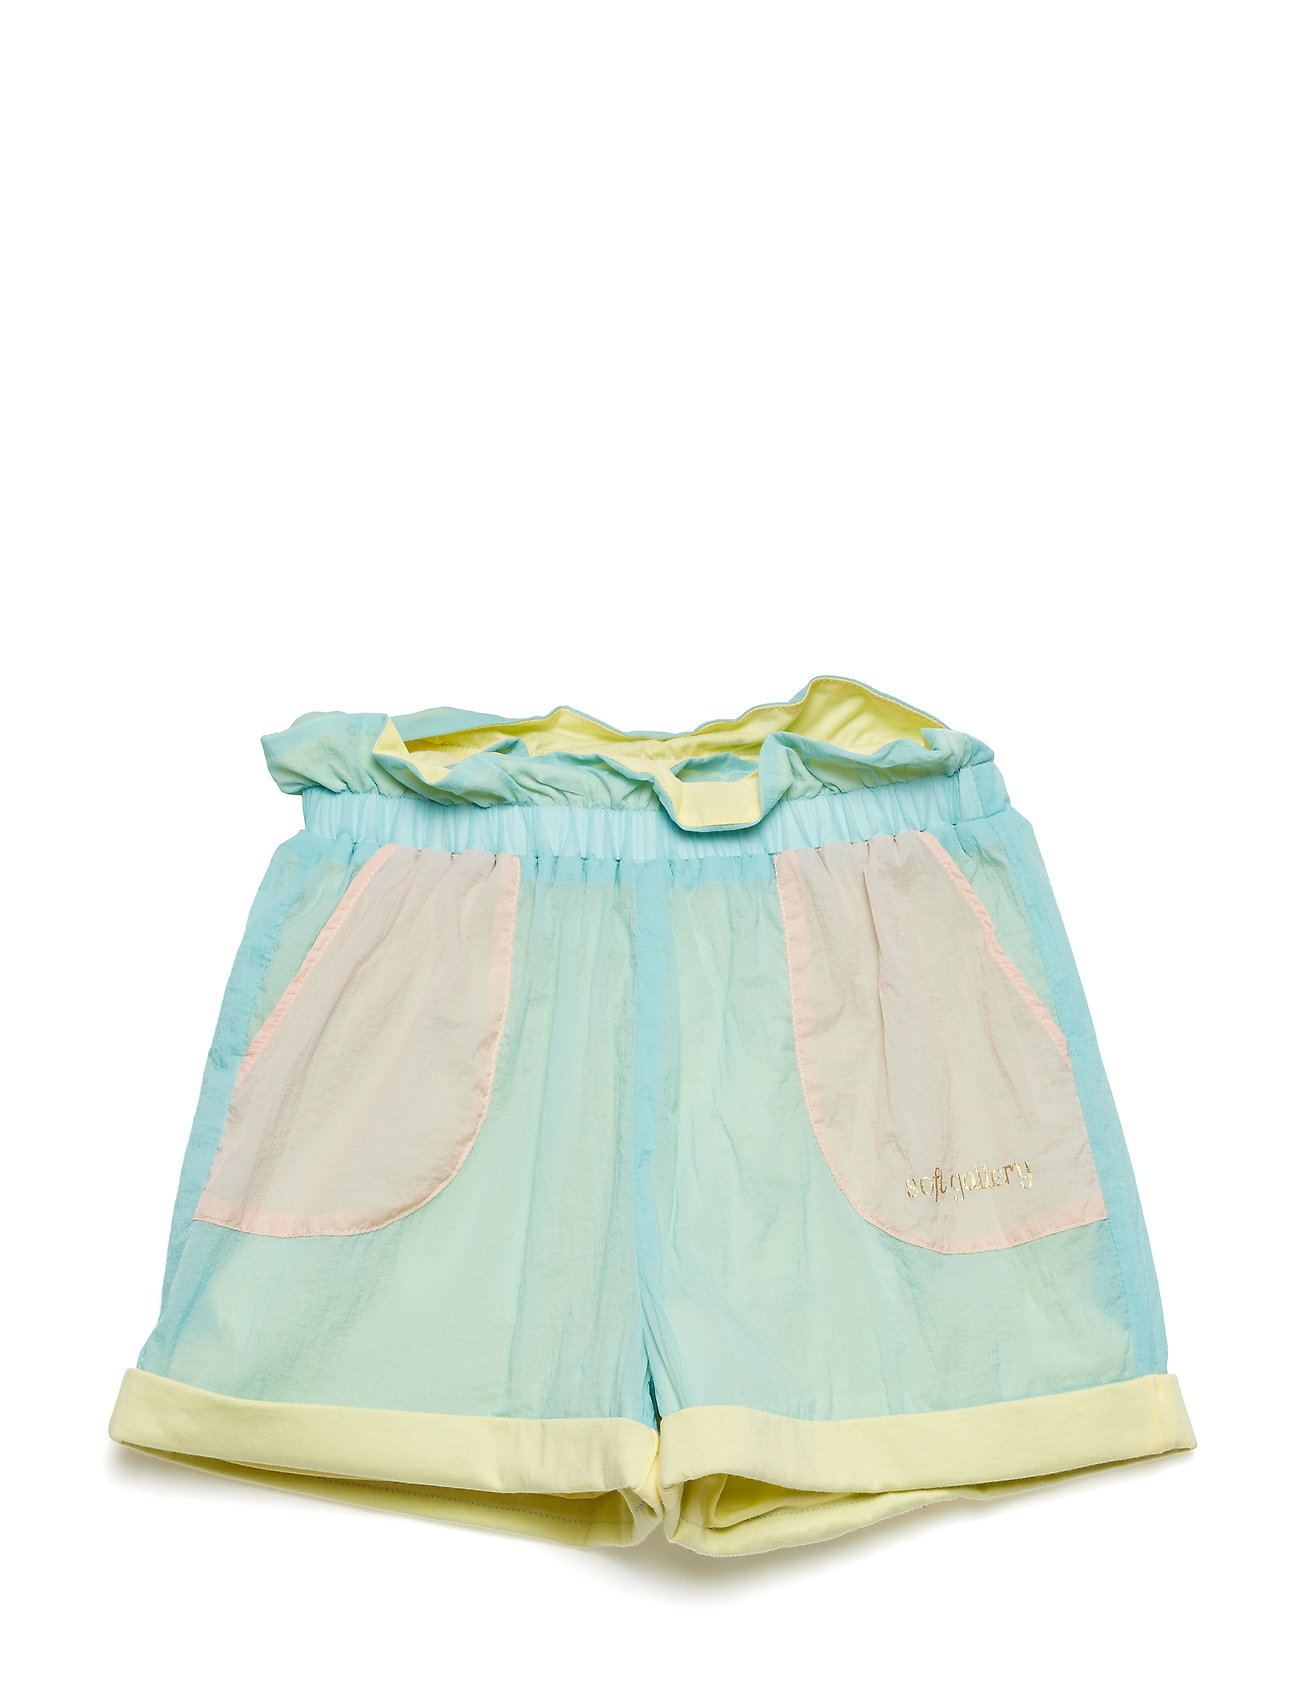 Soft Gallery Dea Shorts - WINDY SILVER